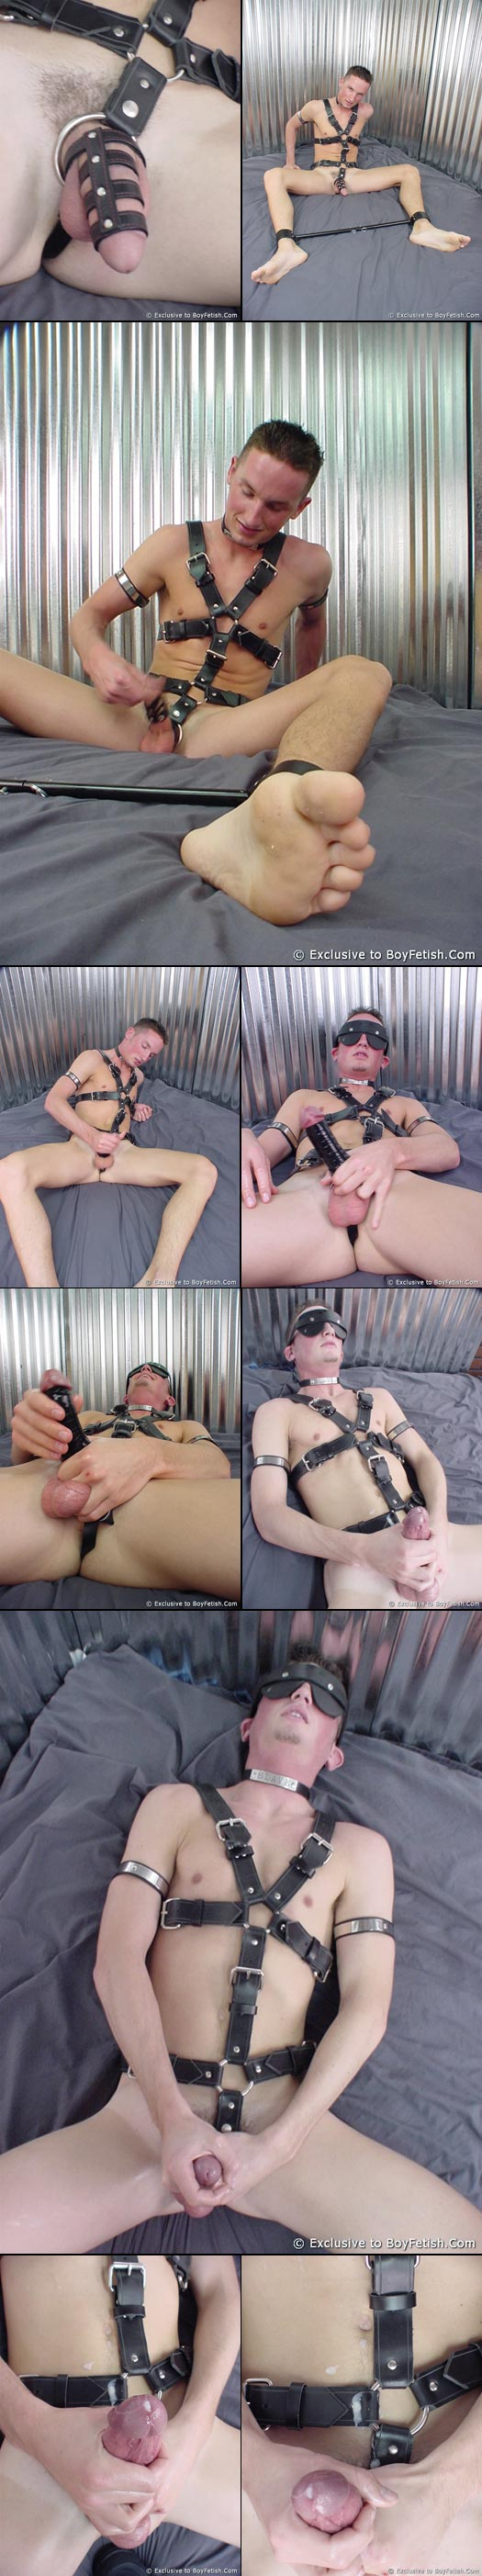 twink in bondage gear masturbating